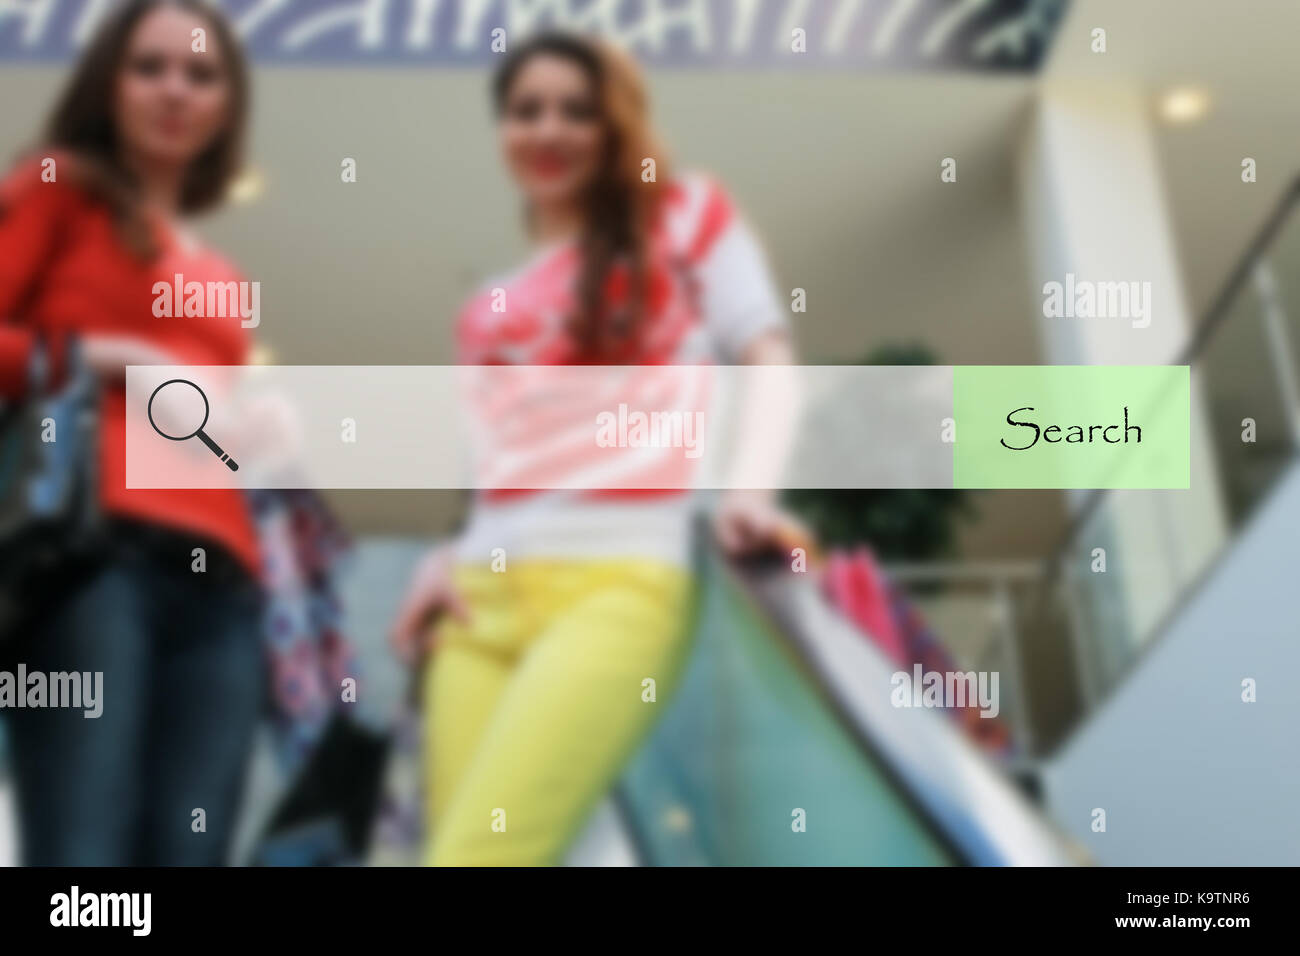 search bar on blurred background shopping young girls - Stock Image